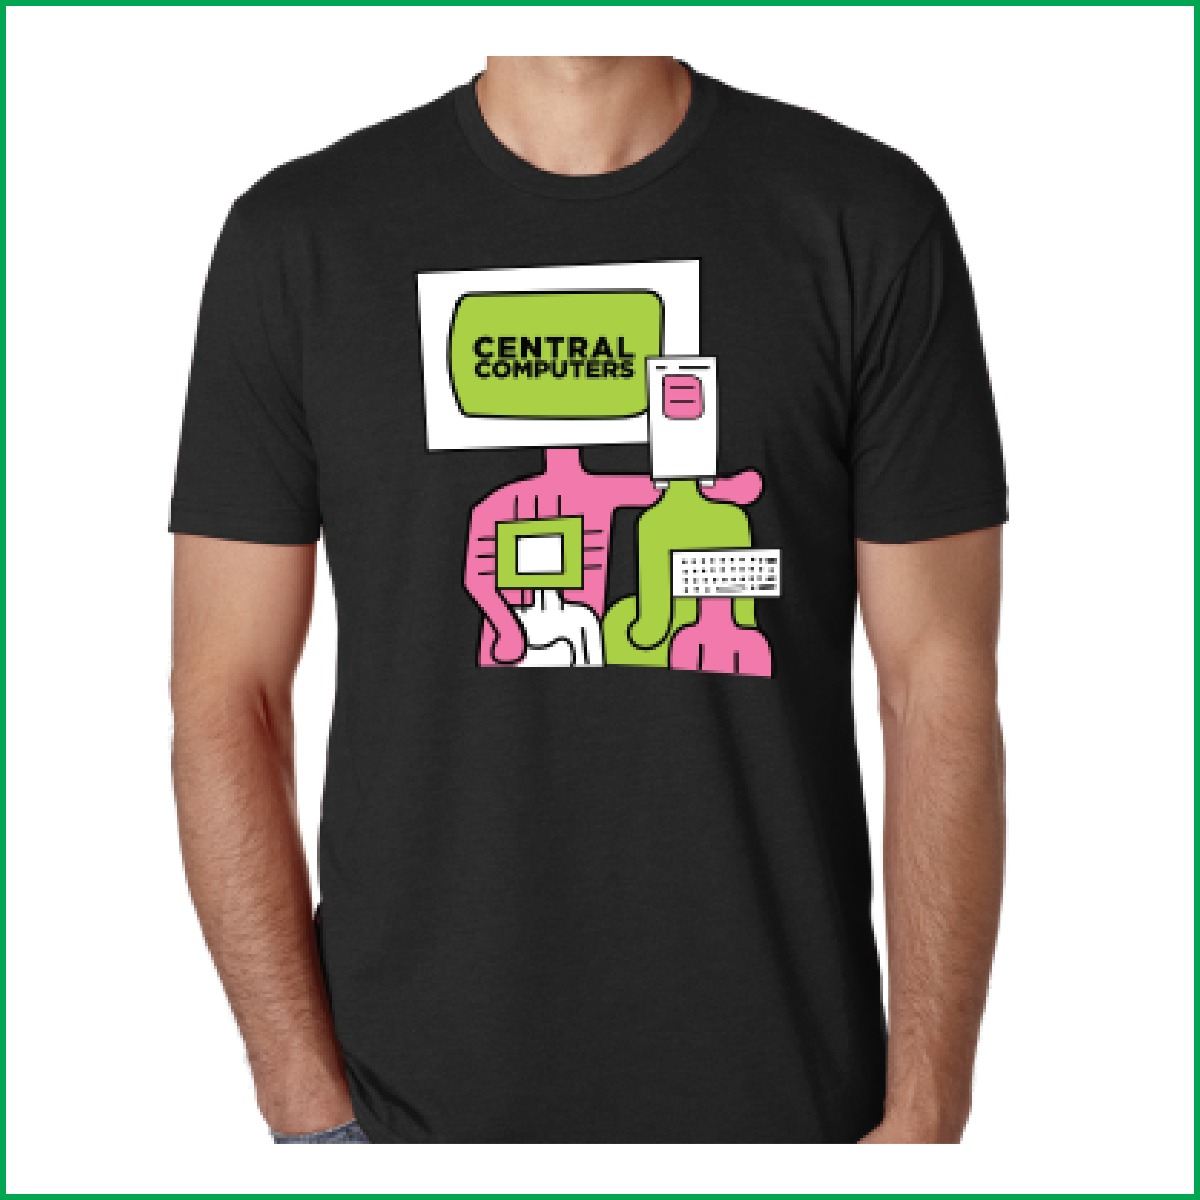 Tech Heads Tshirt Central Computers